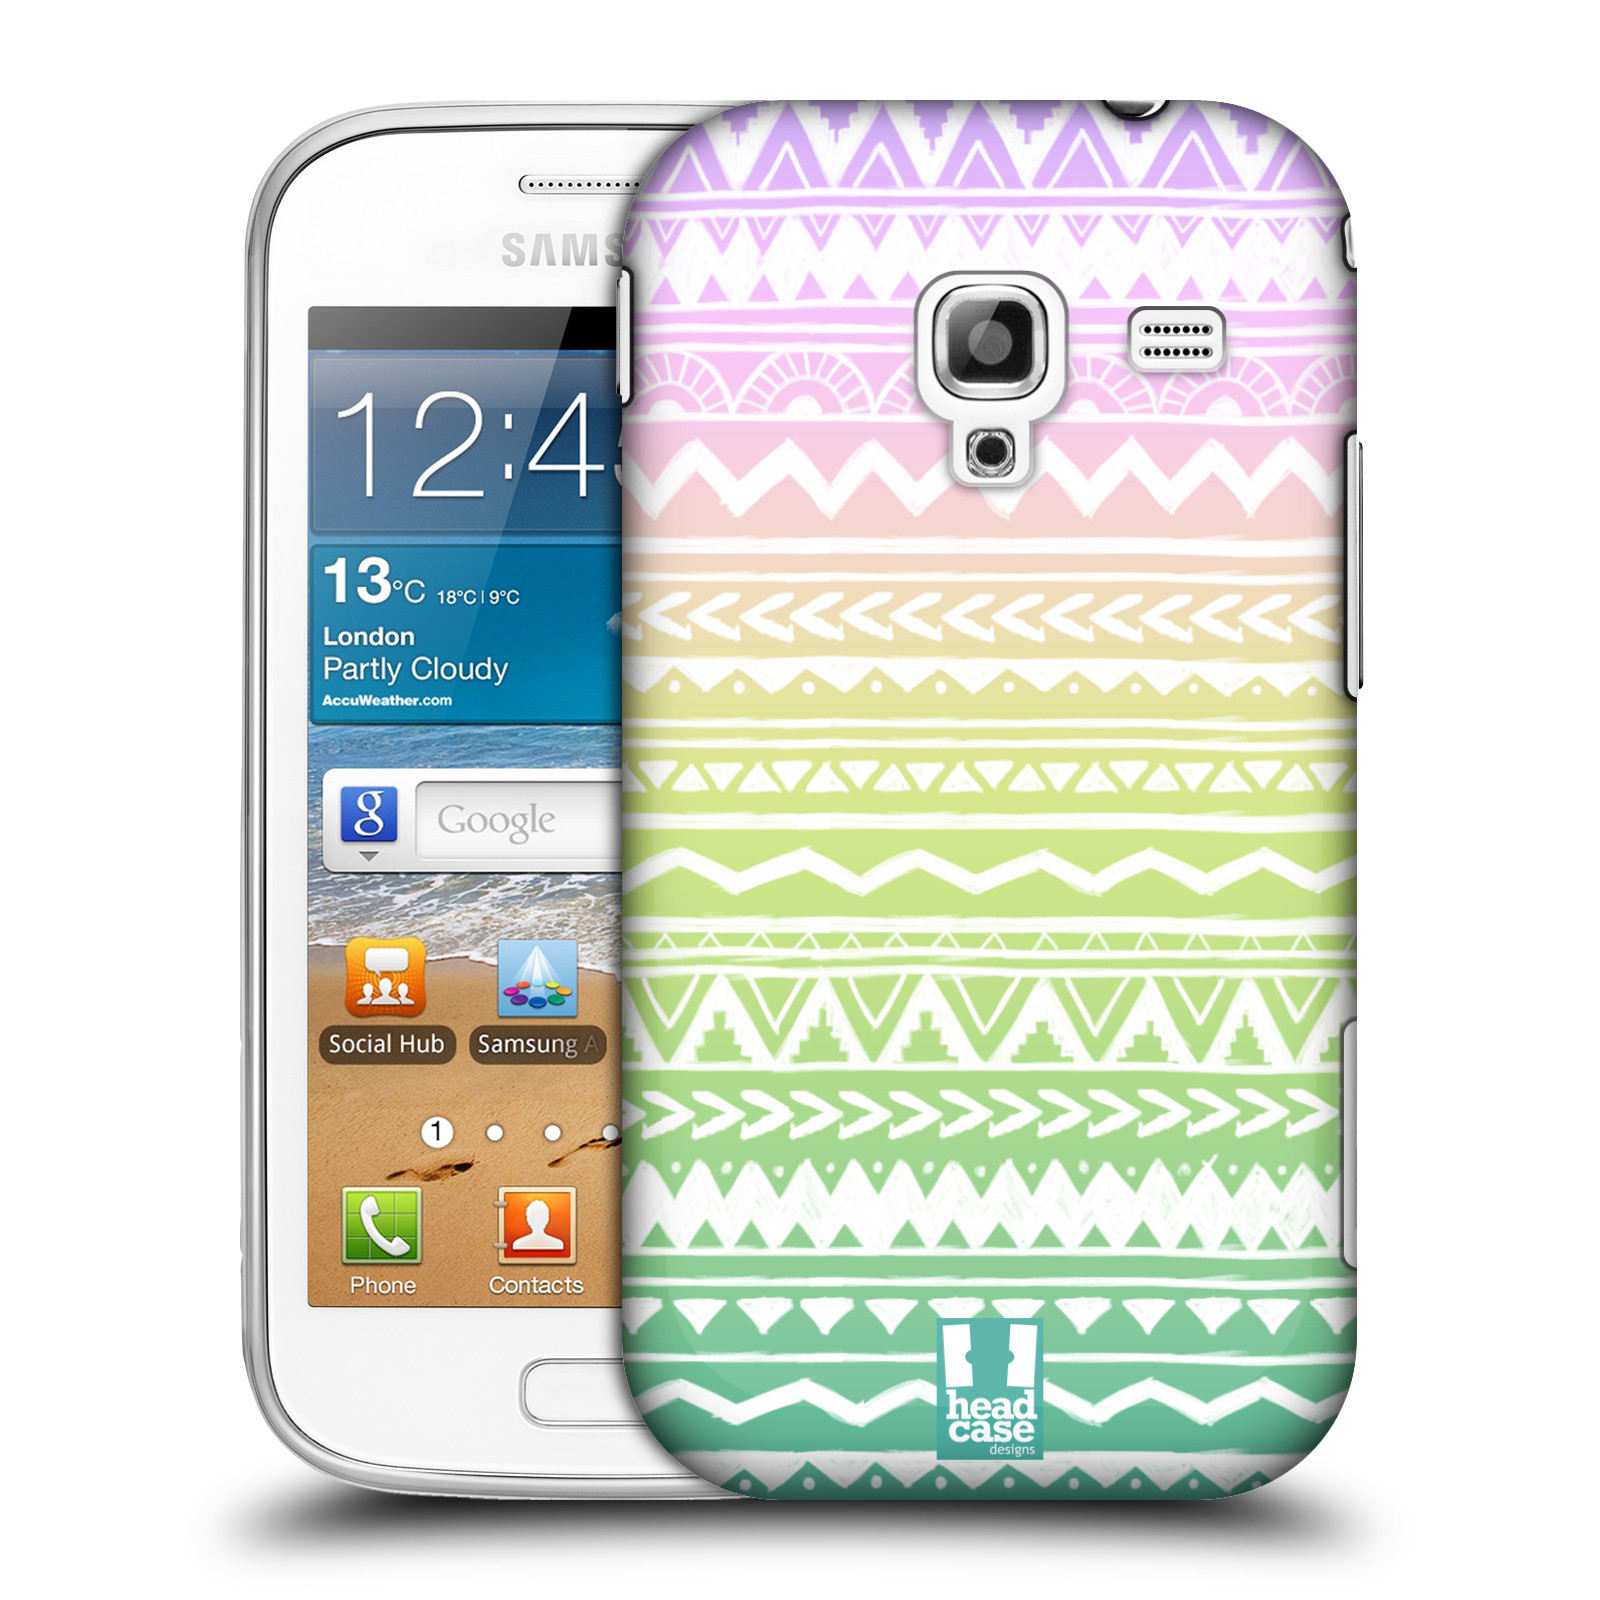 HEAD CASE DESIGNS TREND MIX CASE COVER FOR SAMSUNG GALAXY ACE 2 I8160